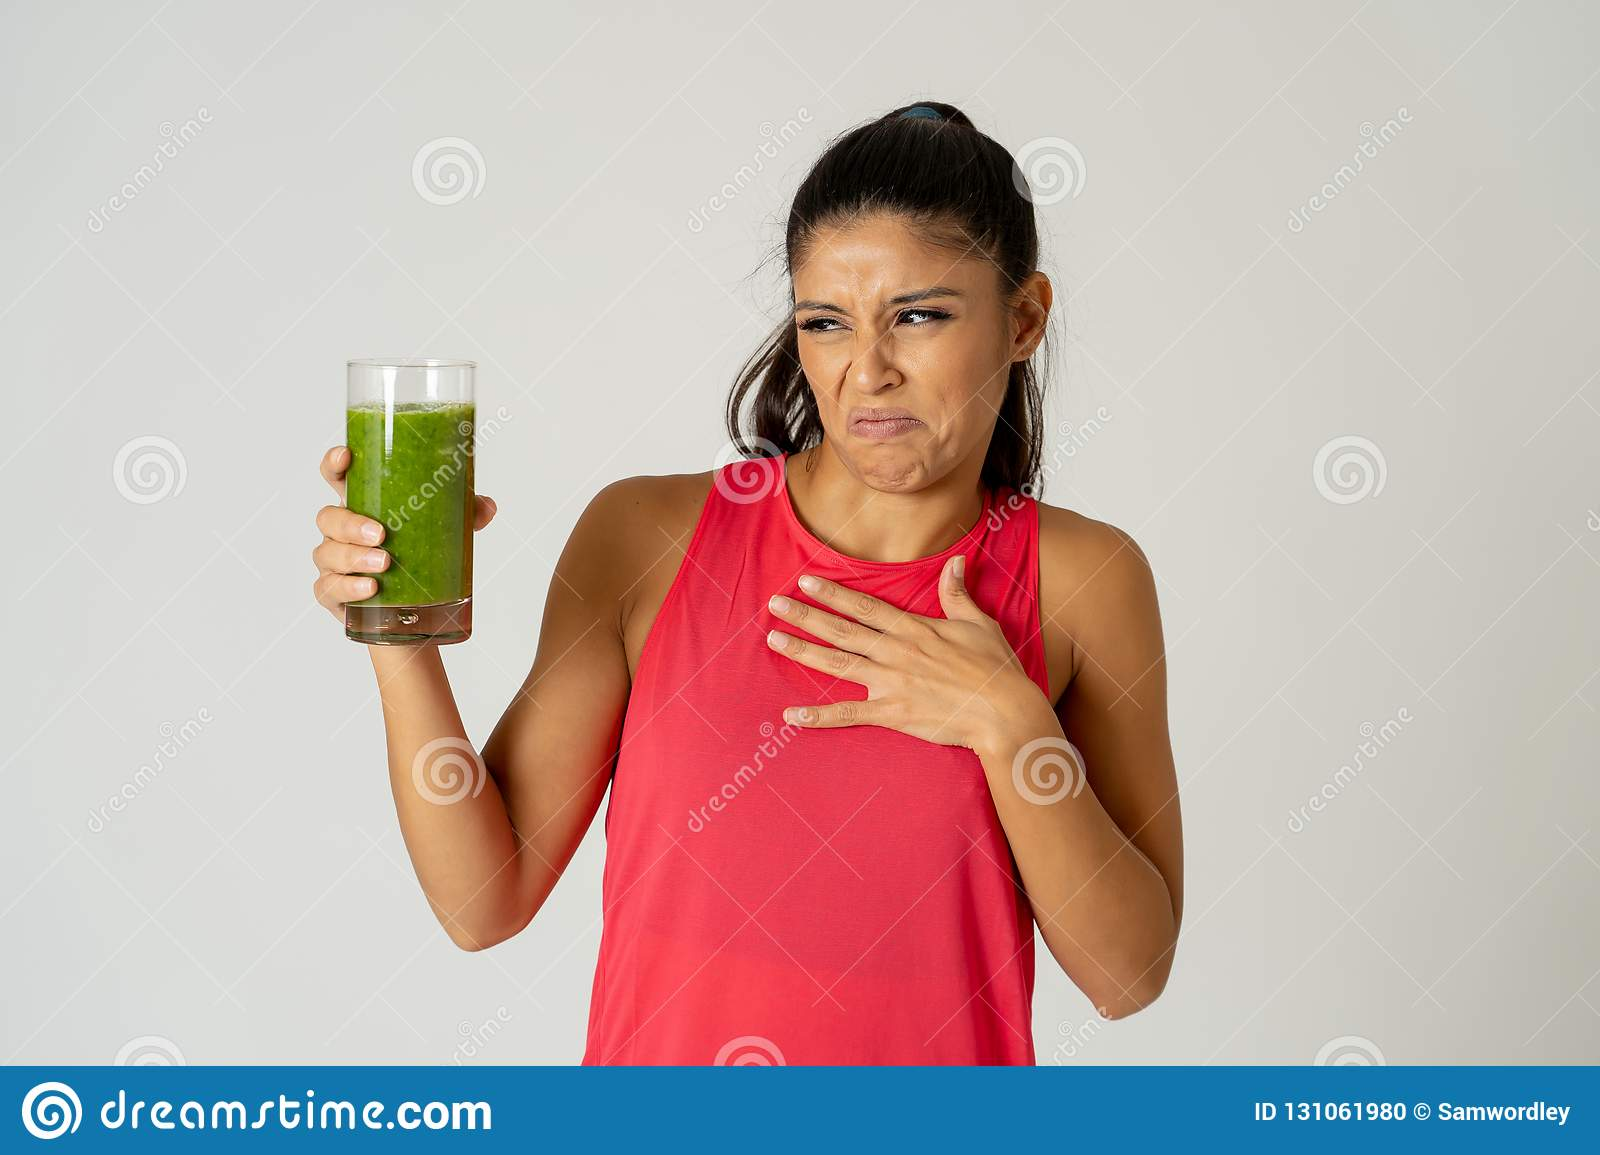 Beautiful young sport woman tired of diet holding green smoothie in dislike